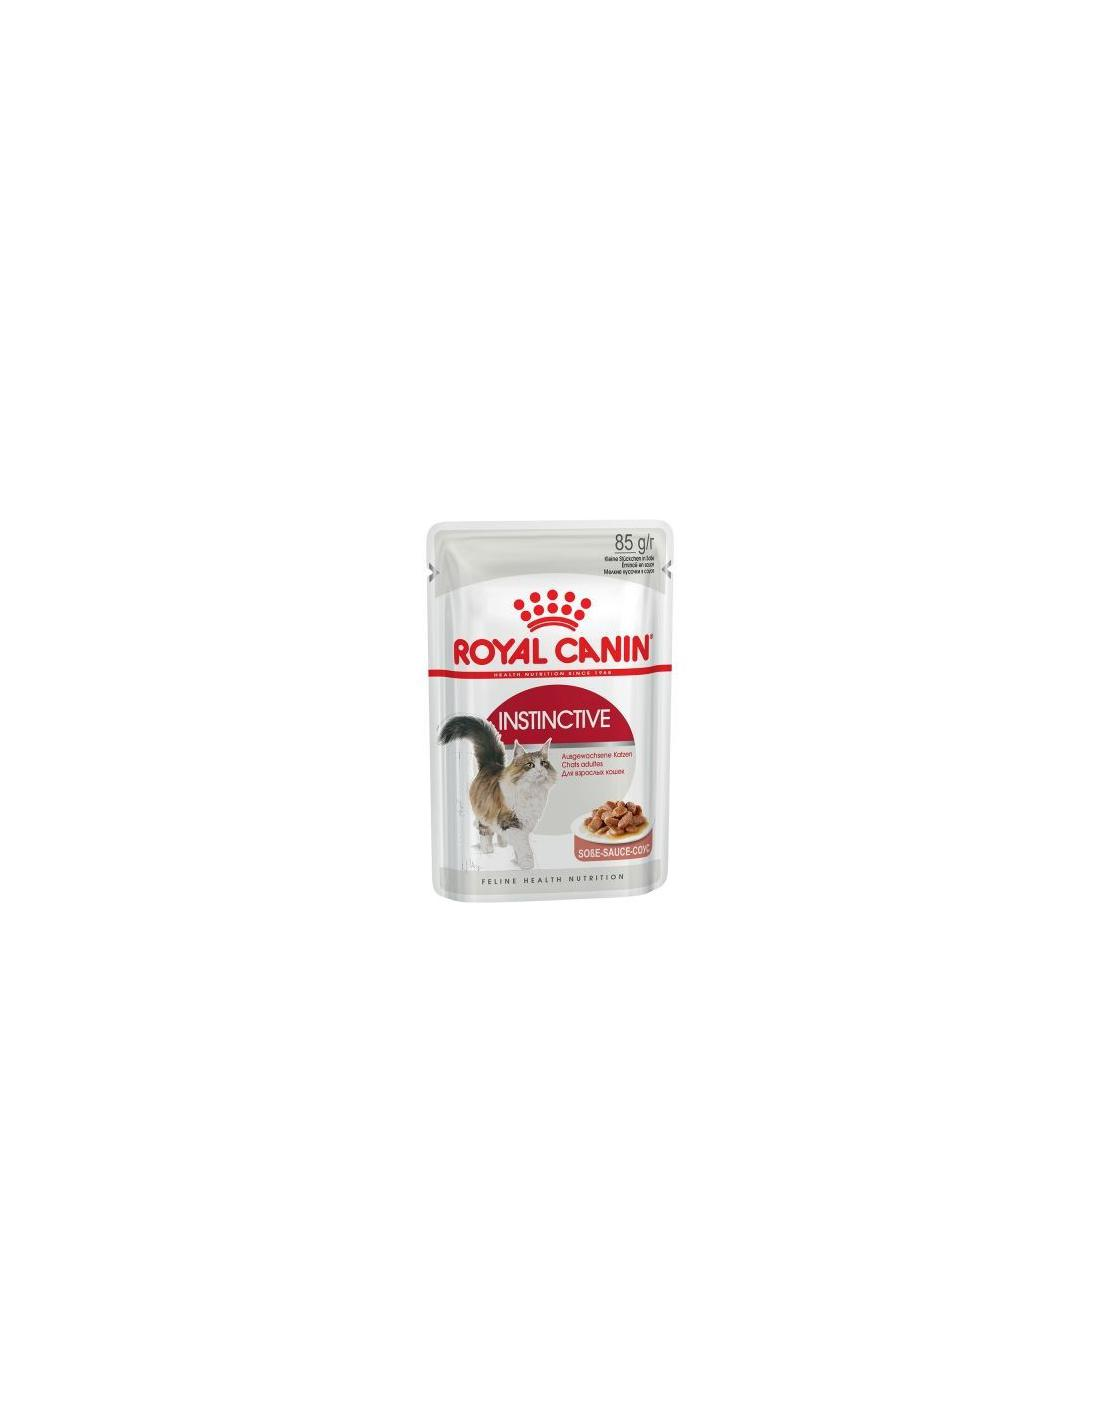 INSTINCTIVE 85G ROYAL CANIN - 1